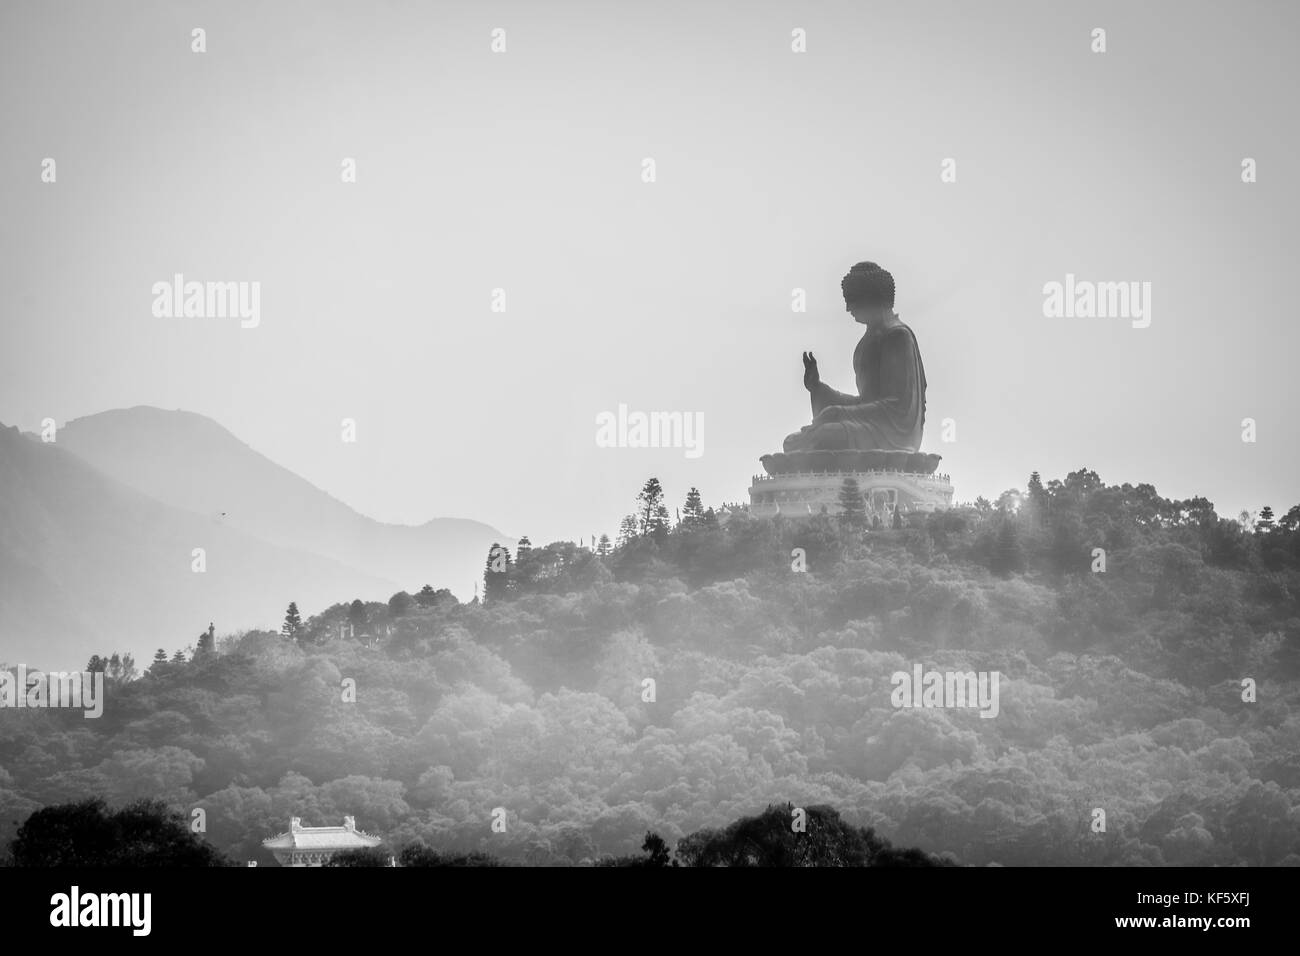 Tian Tan Buddha, also known as the Big Buddha, is a large bronze statue of a Buddha Amoghasiddhi, located at Ngong - Stock Image